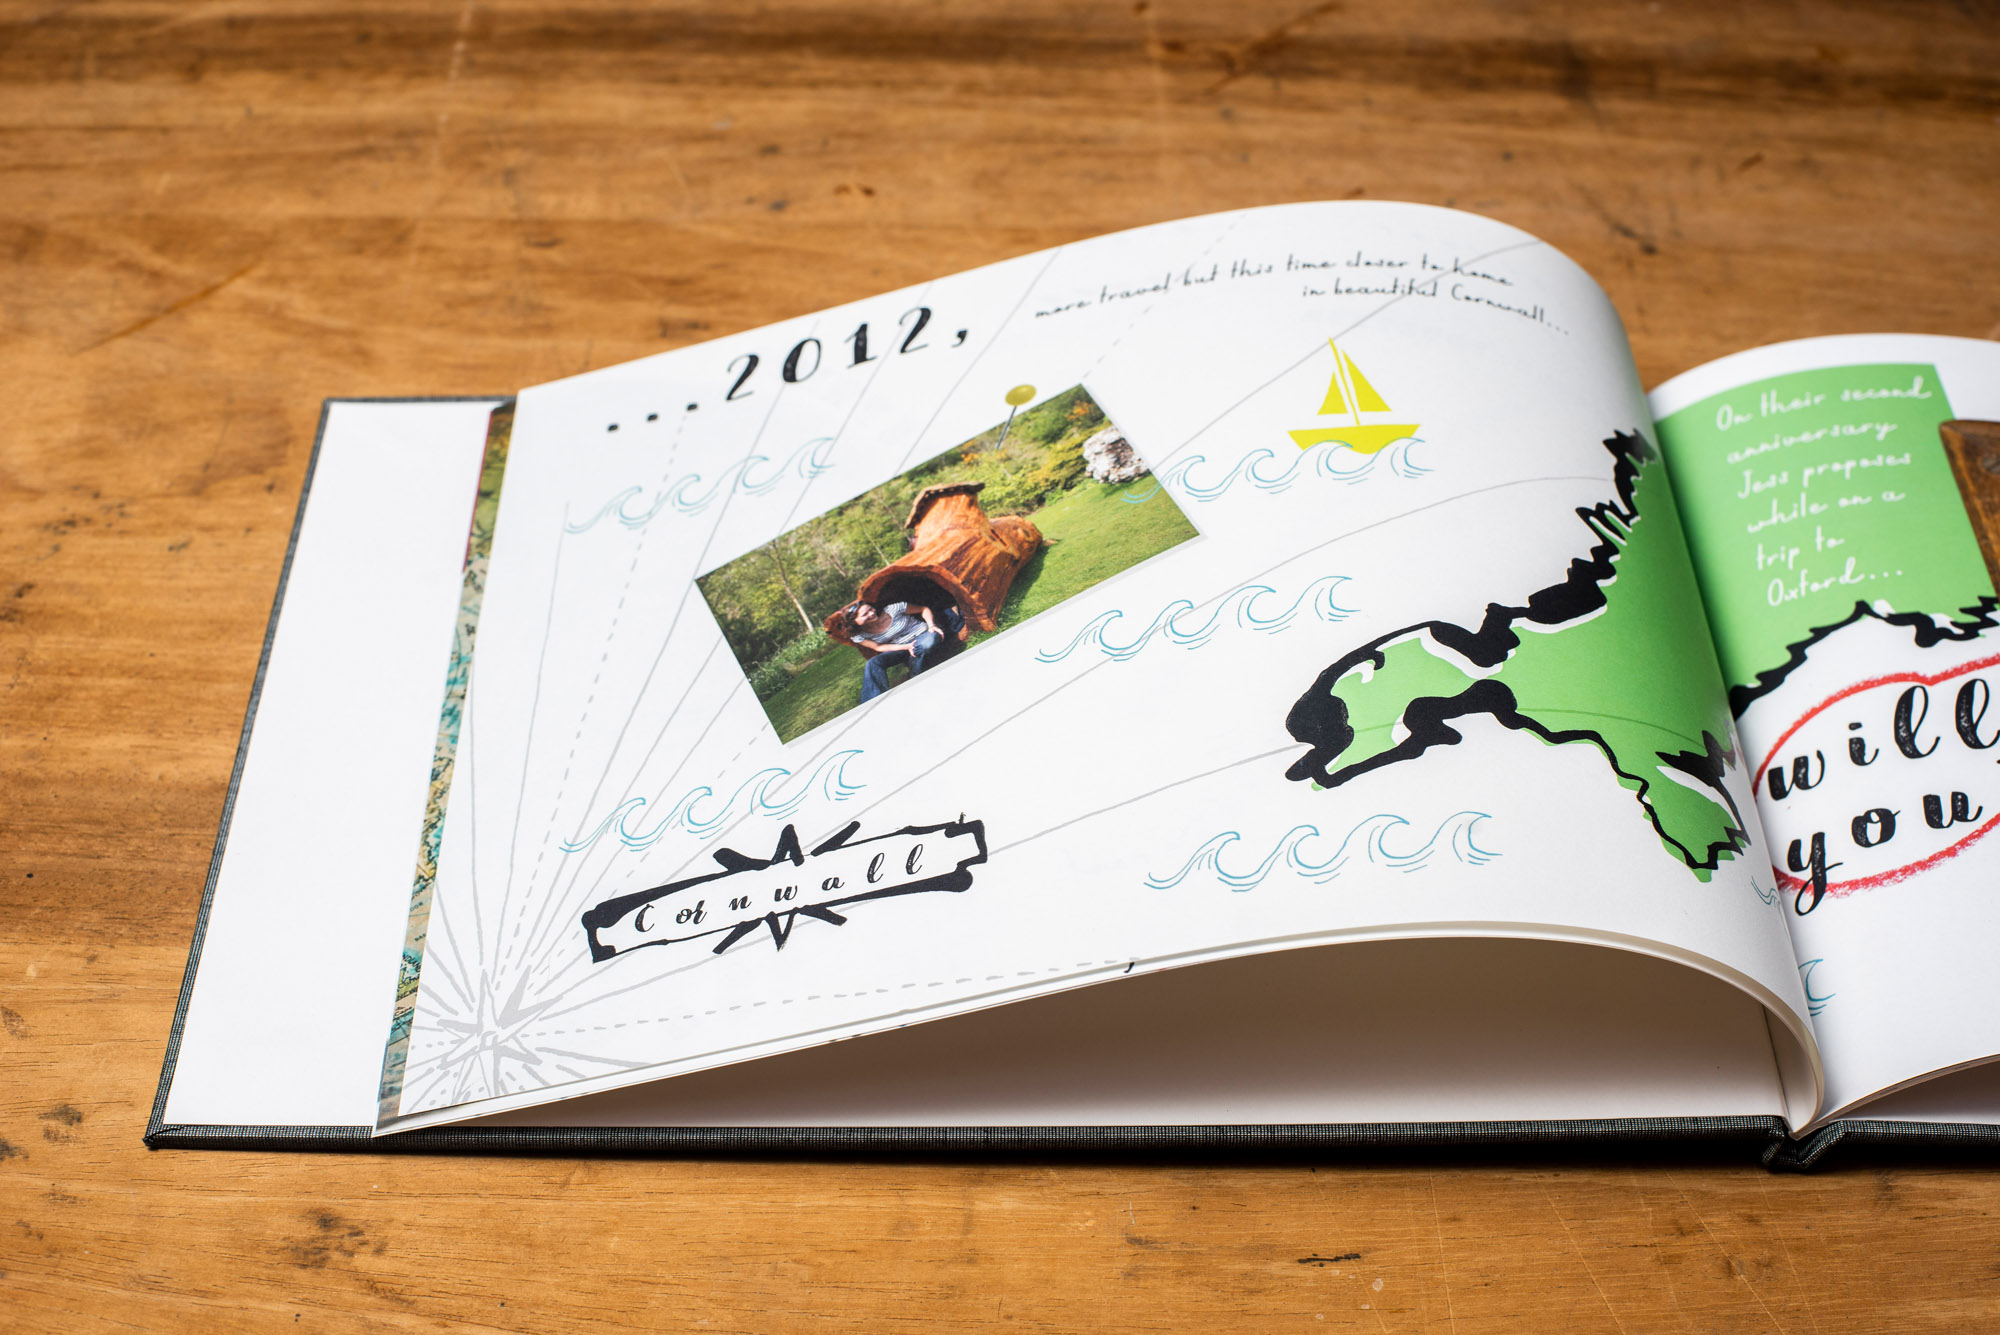 These bespoke luxury illustrated scrap books work so well for your partners birthday or your wedding anniversary. The story of your lives together, the growing family, the adventures you've already shared, the fun you plan for your futures together.